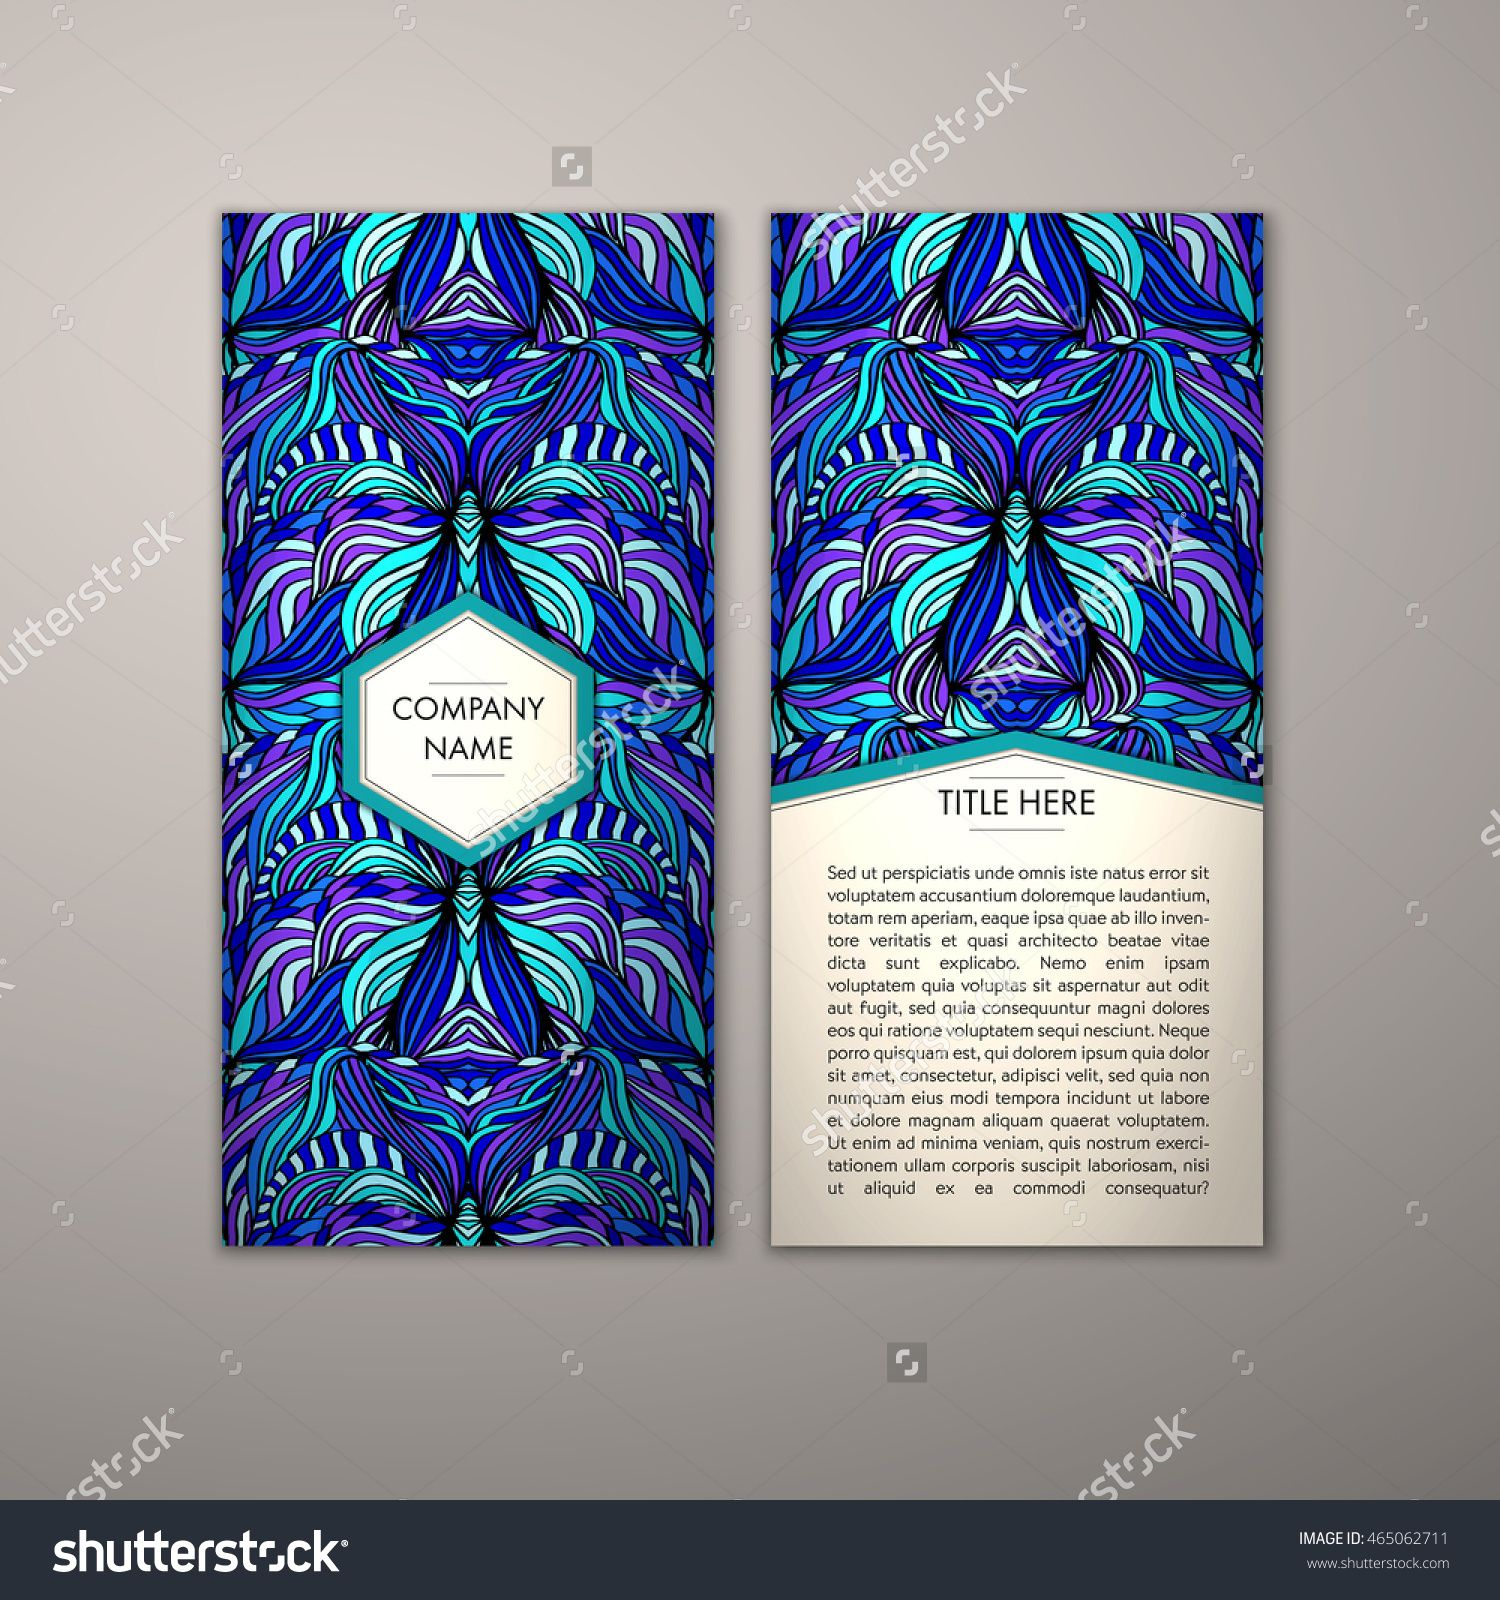 Flyer template with abstract ornament pattern vector greeting card flyer template with abstract ornament pattern vector greeting card design front page and back page m4hsunfo